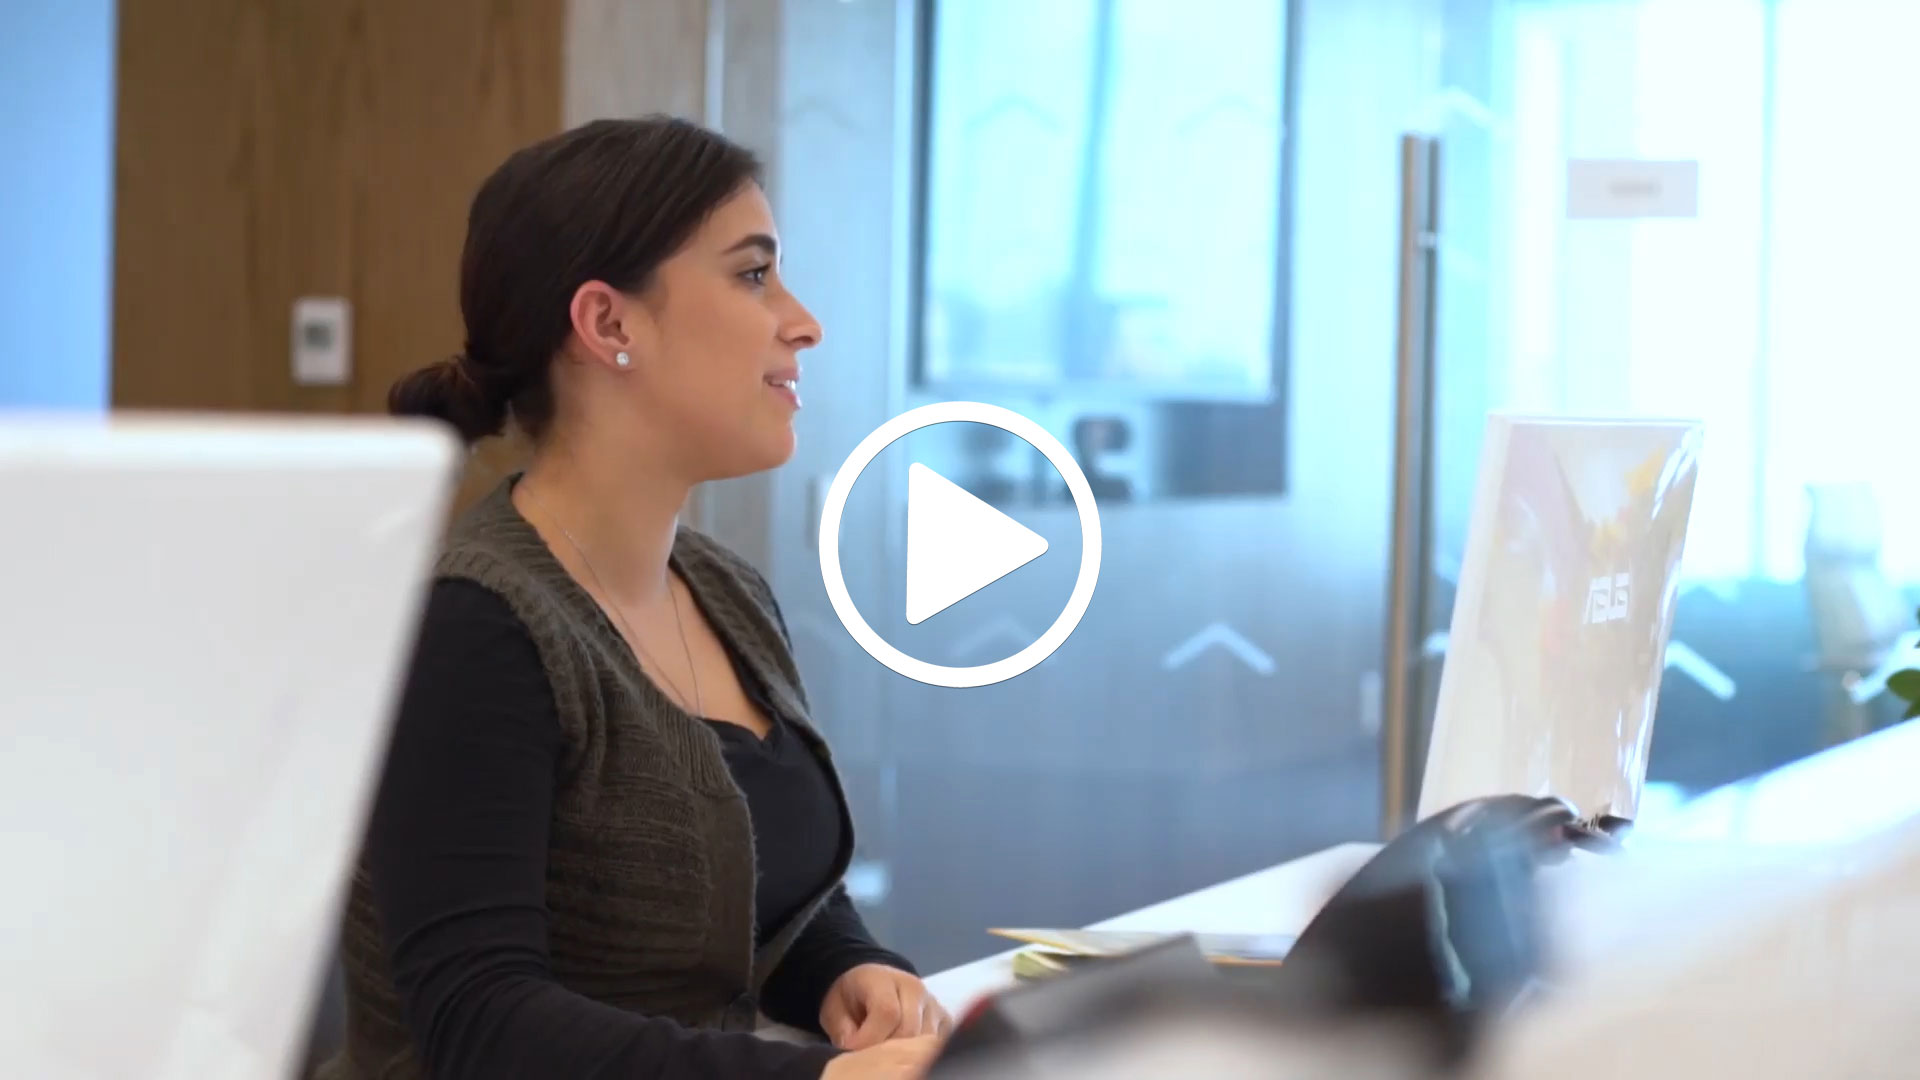 Watch our careers video for available job opening Senior Linux Systems Administrator Opportunity in Hoboken, NJ in Hoboken, NJ